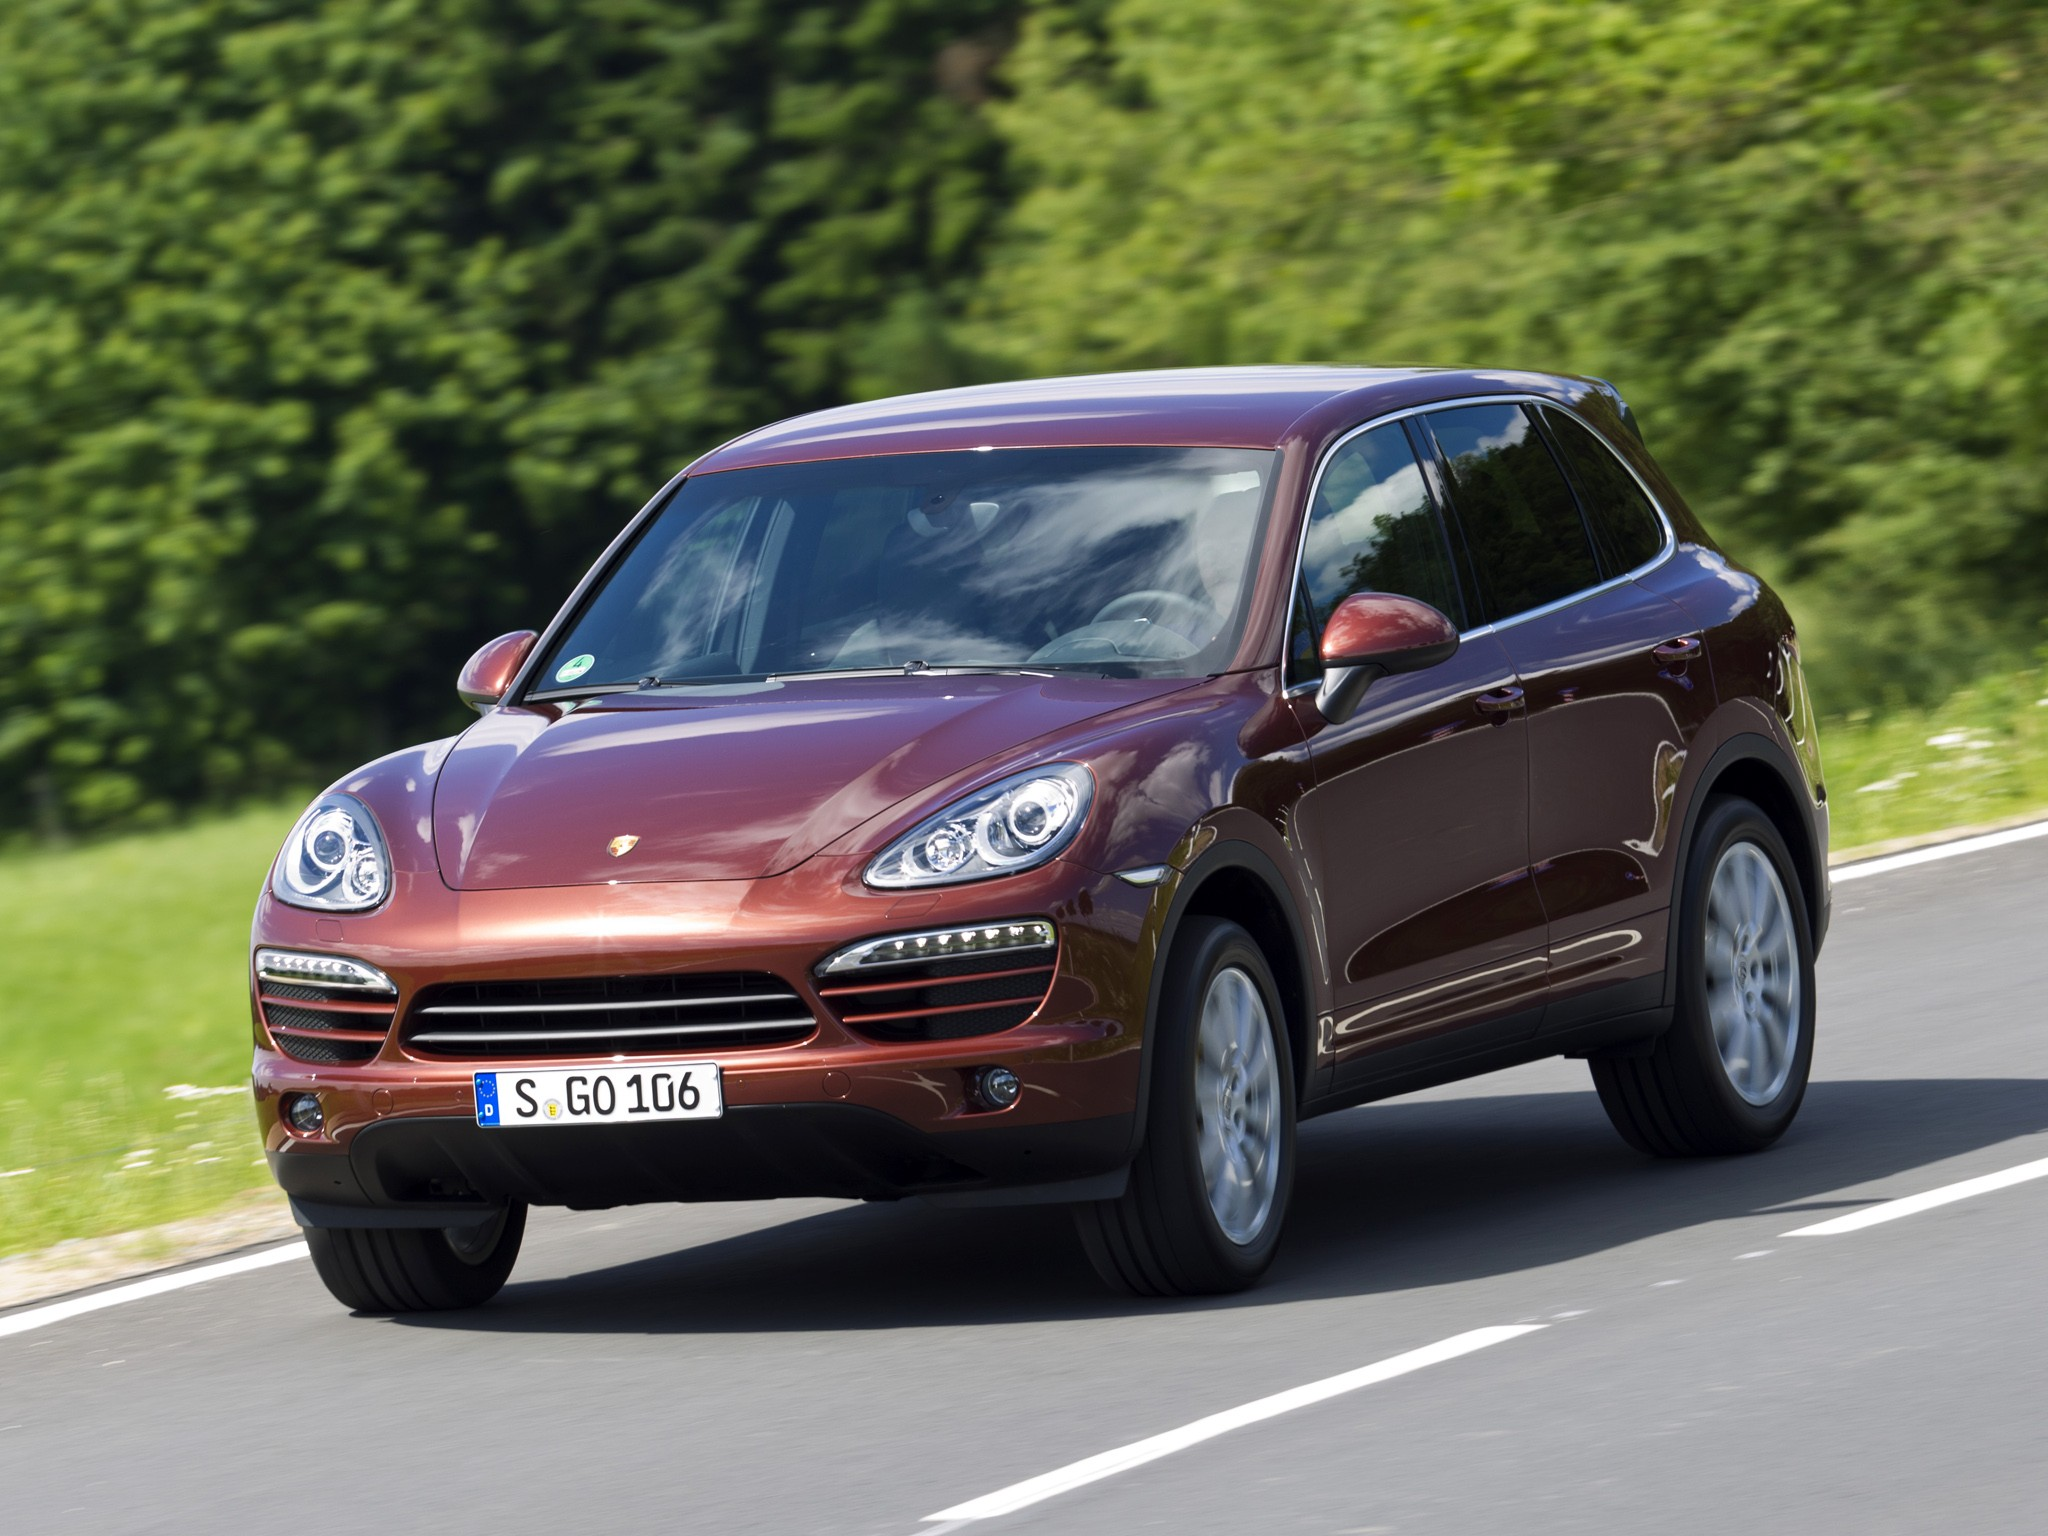 porsche cayenne specs 2010 2011 2012 2013 2014 2015 autoevolution. Black Bedroom Furniture Sets. Home Design Ideas